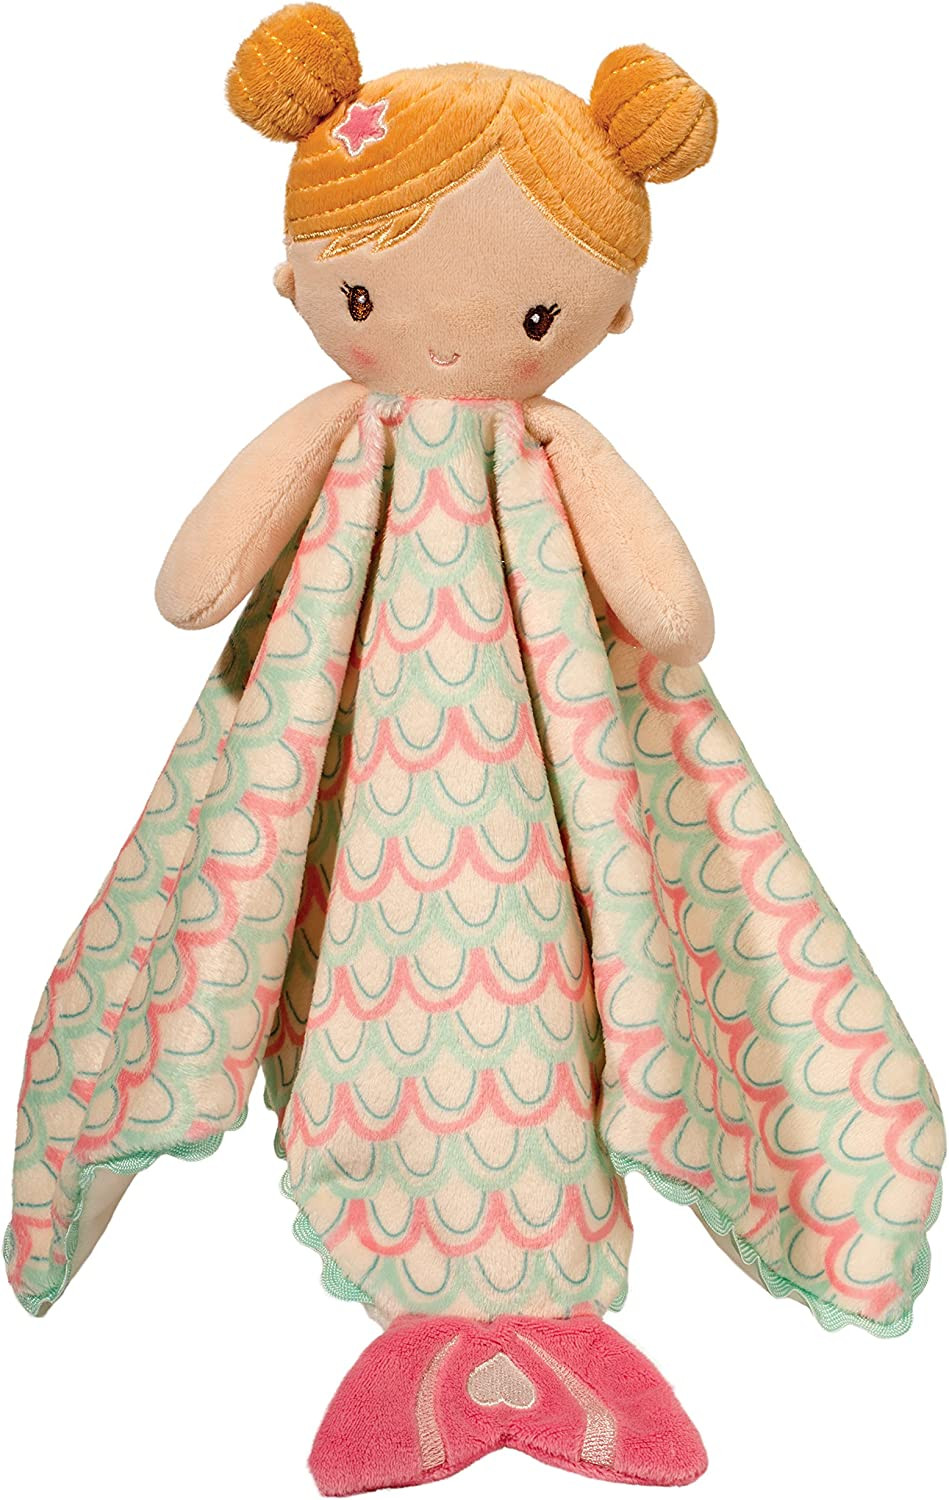 Douglas Toys Mermaid Lil Snuggler Baby Lovey Blanket with Embroidered Details